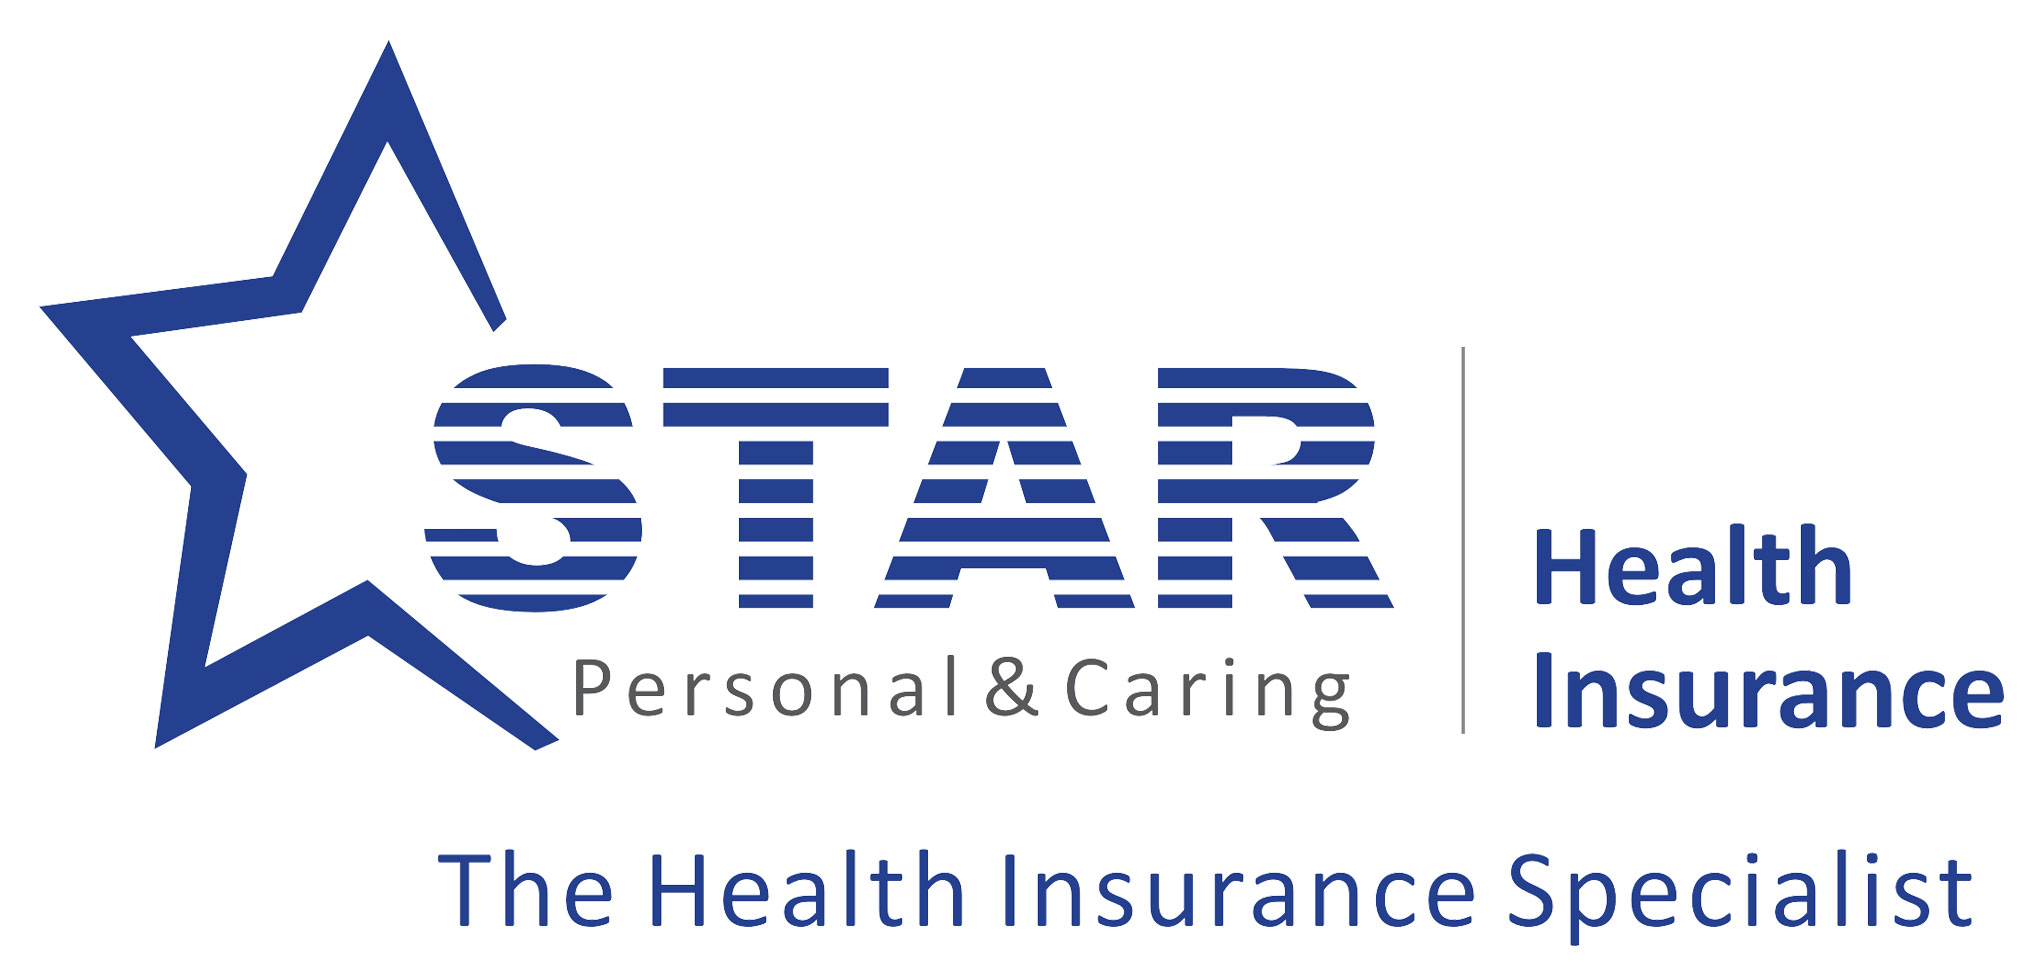 STAR Health Insurance Image